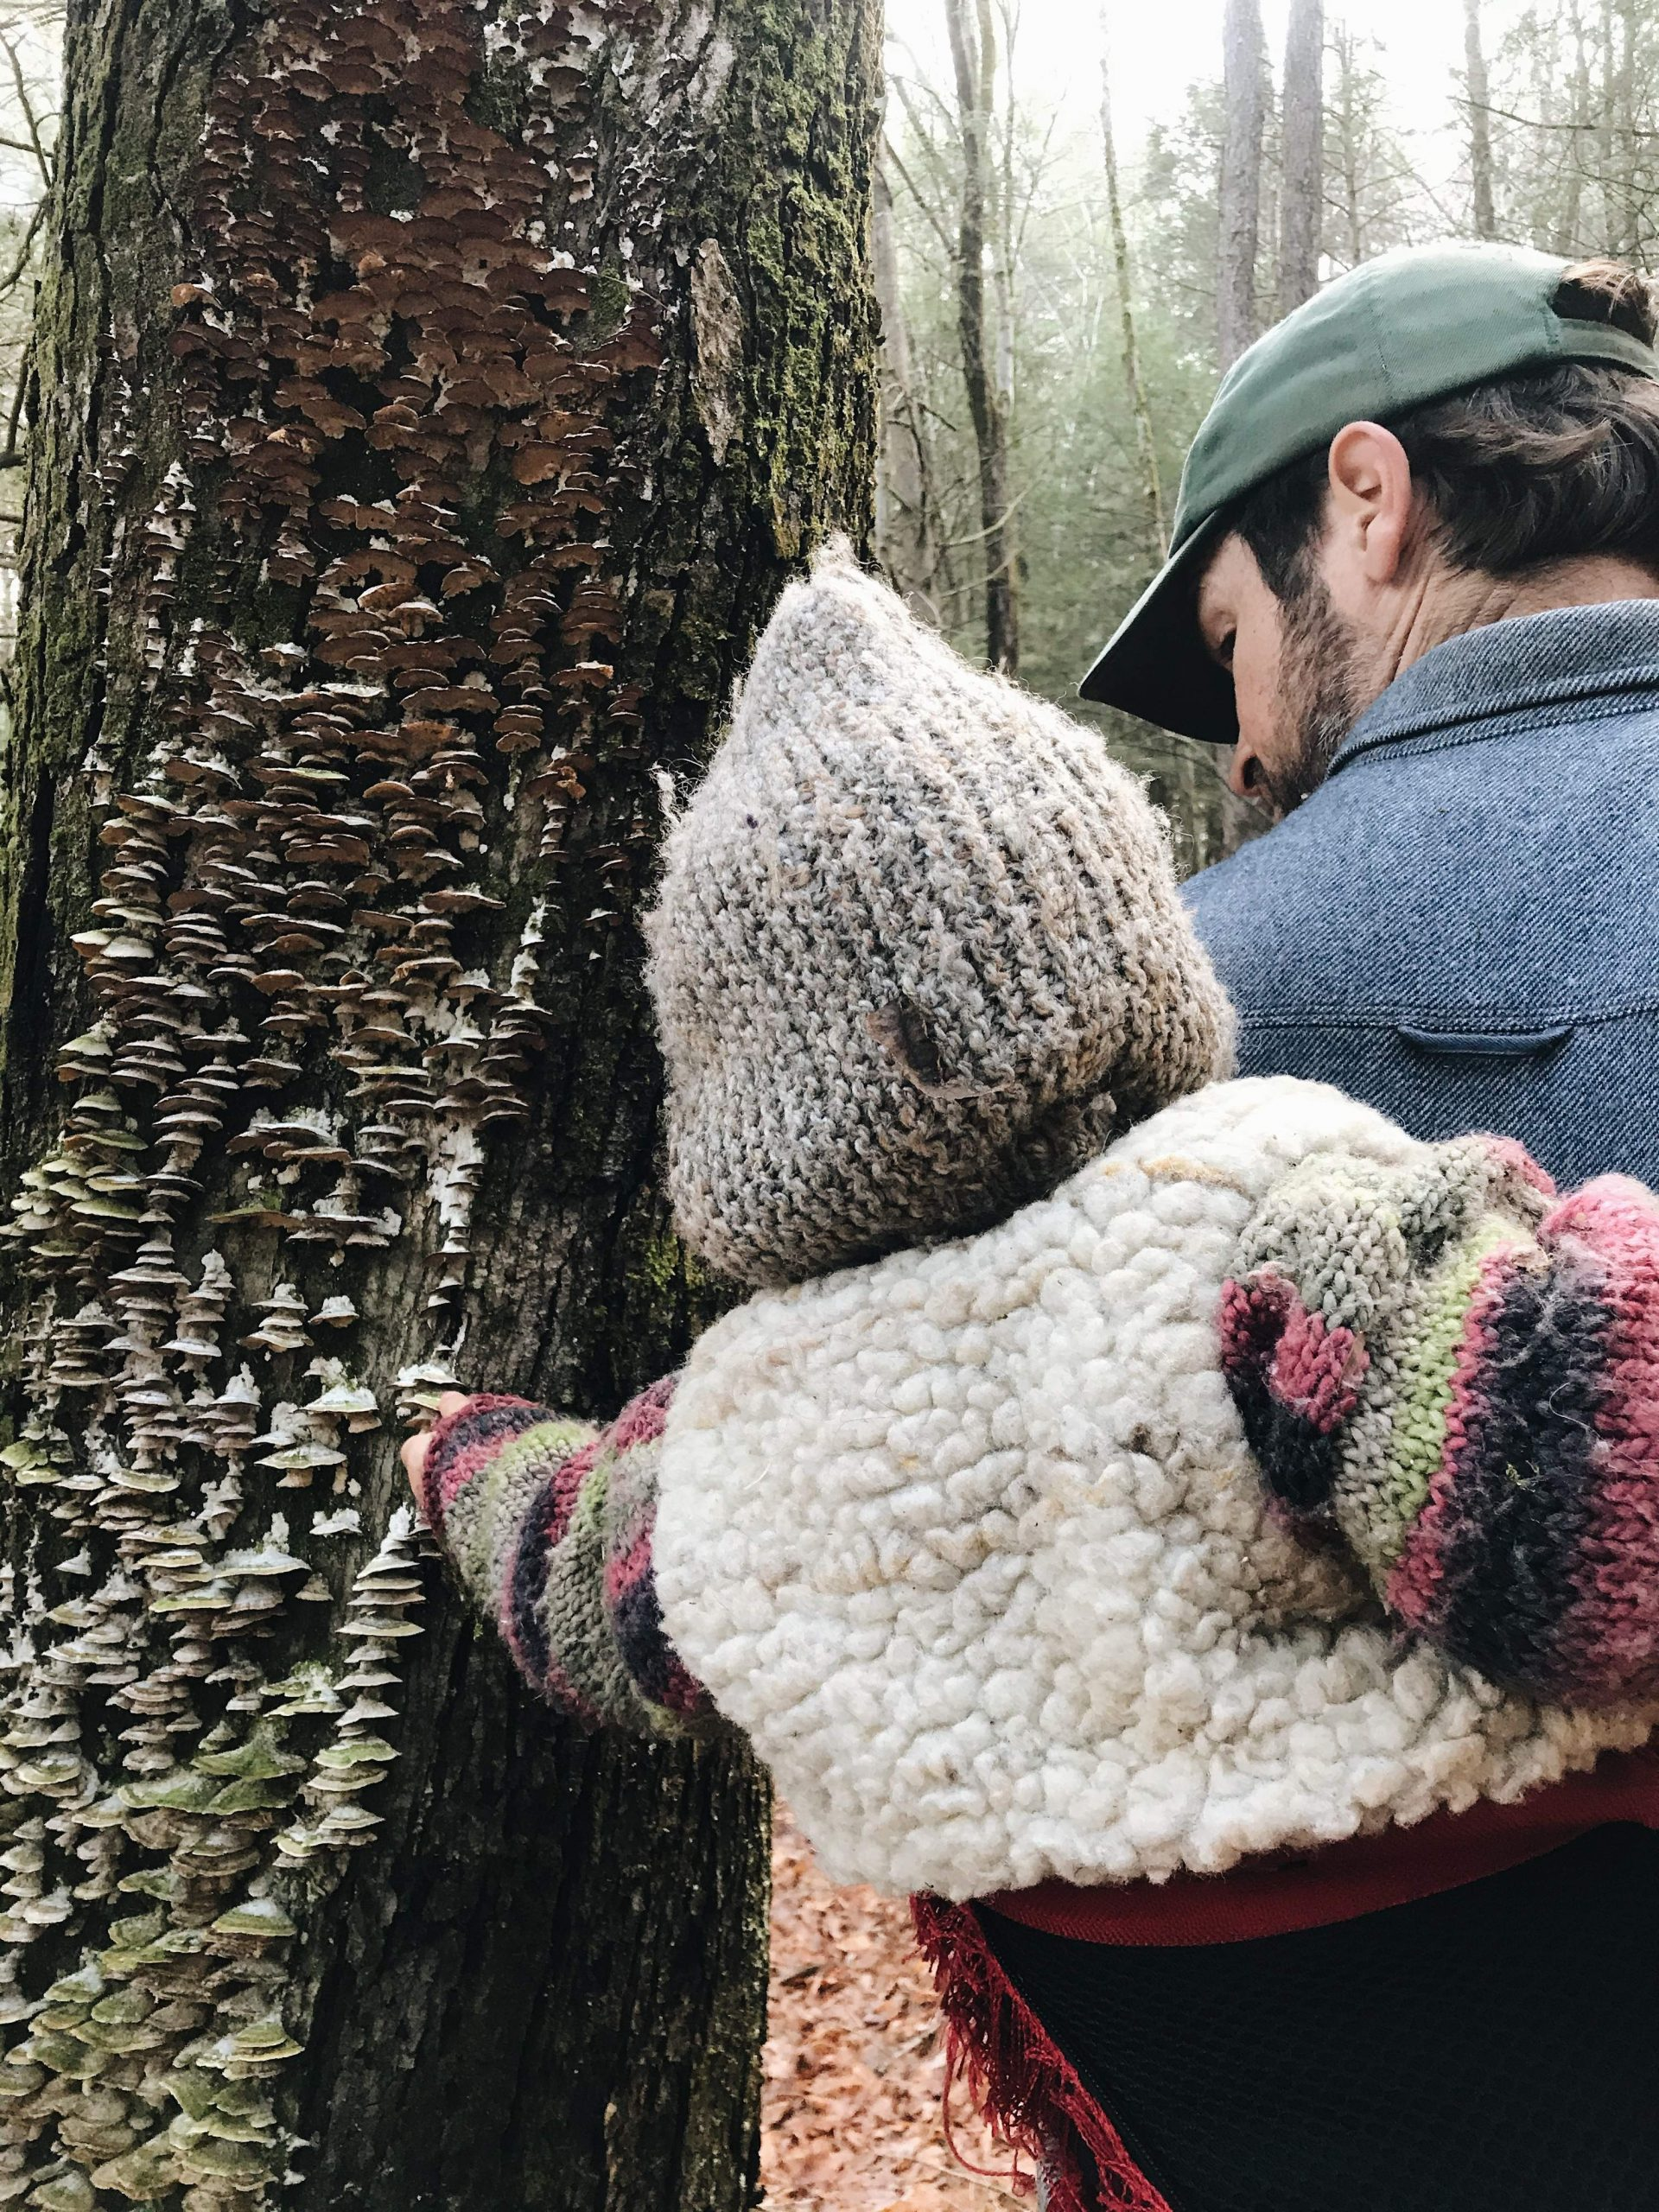 Baby on dad's back touching funghi on tree